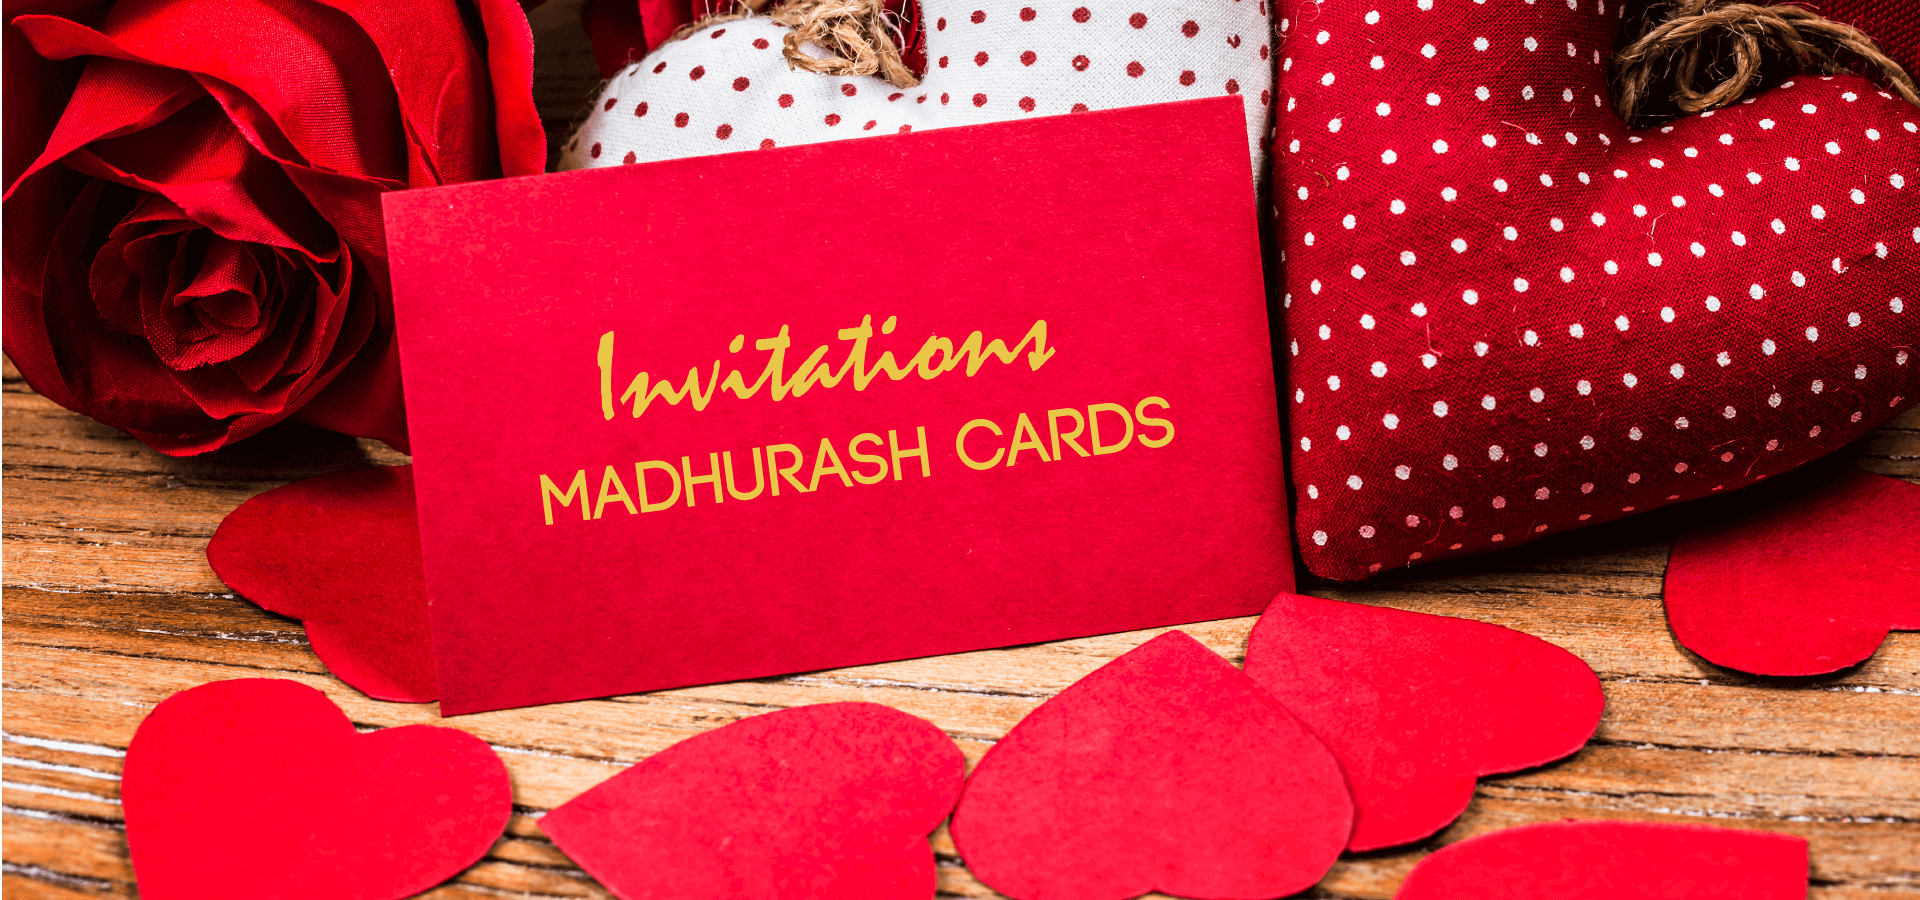 Web Development for Madhurash Cards